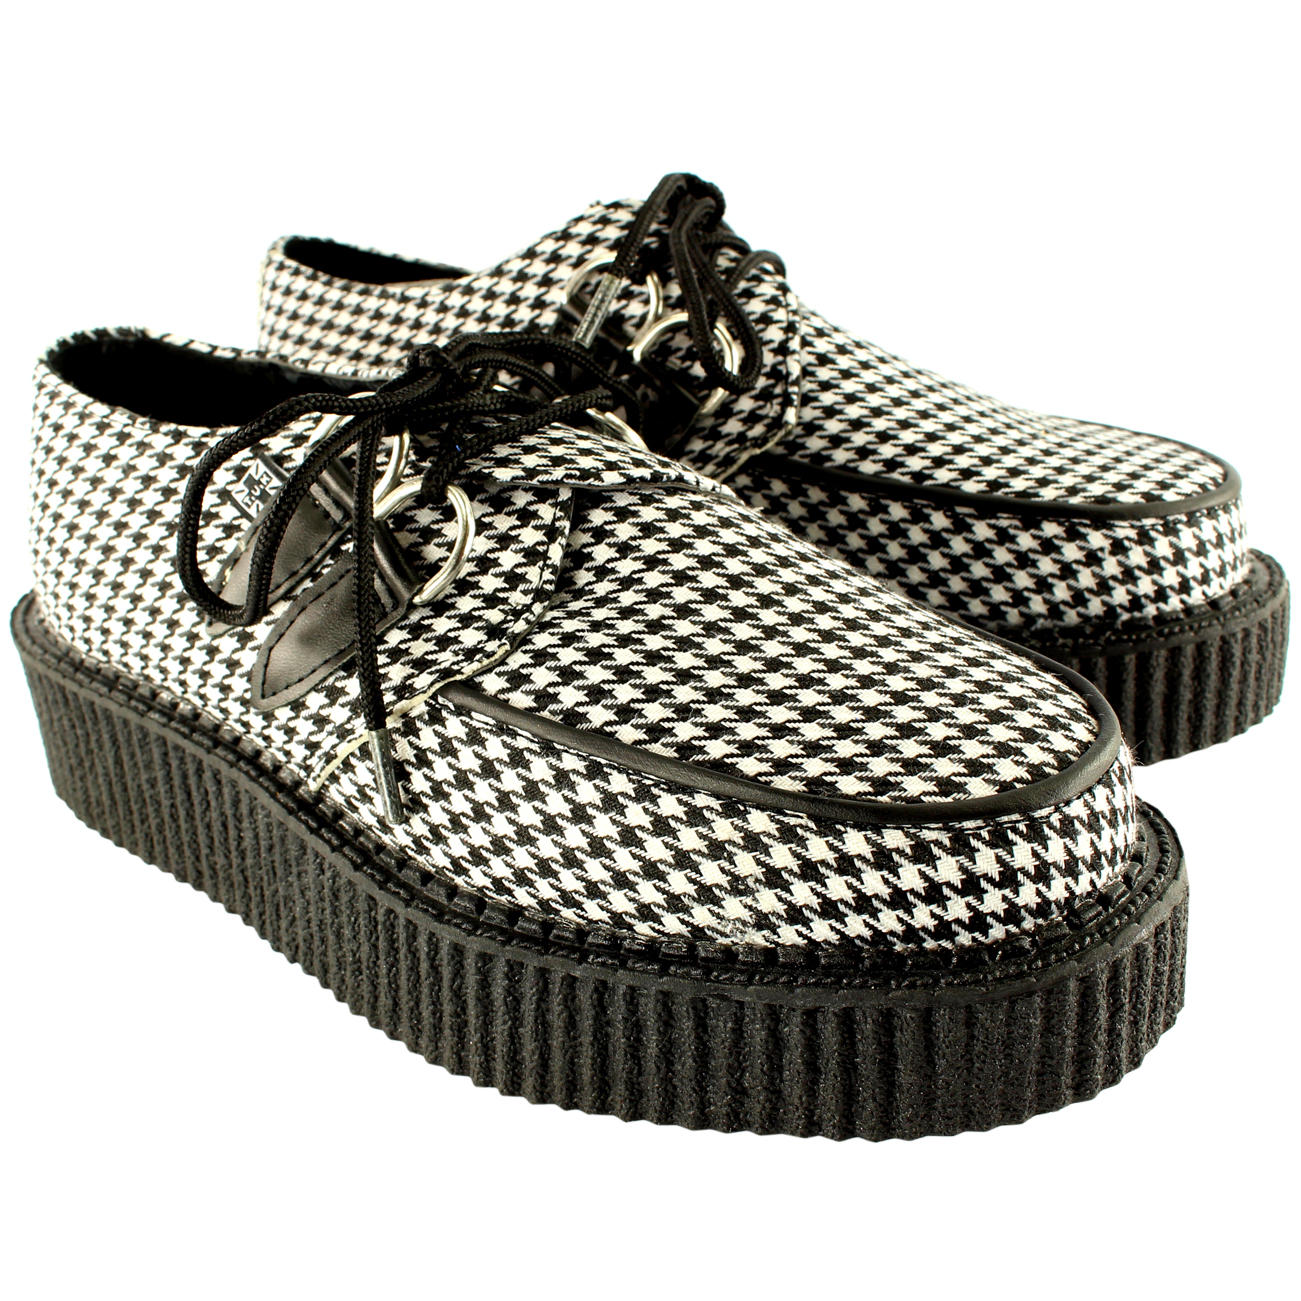 T.U.K Houndstooth Round Low